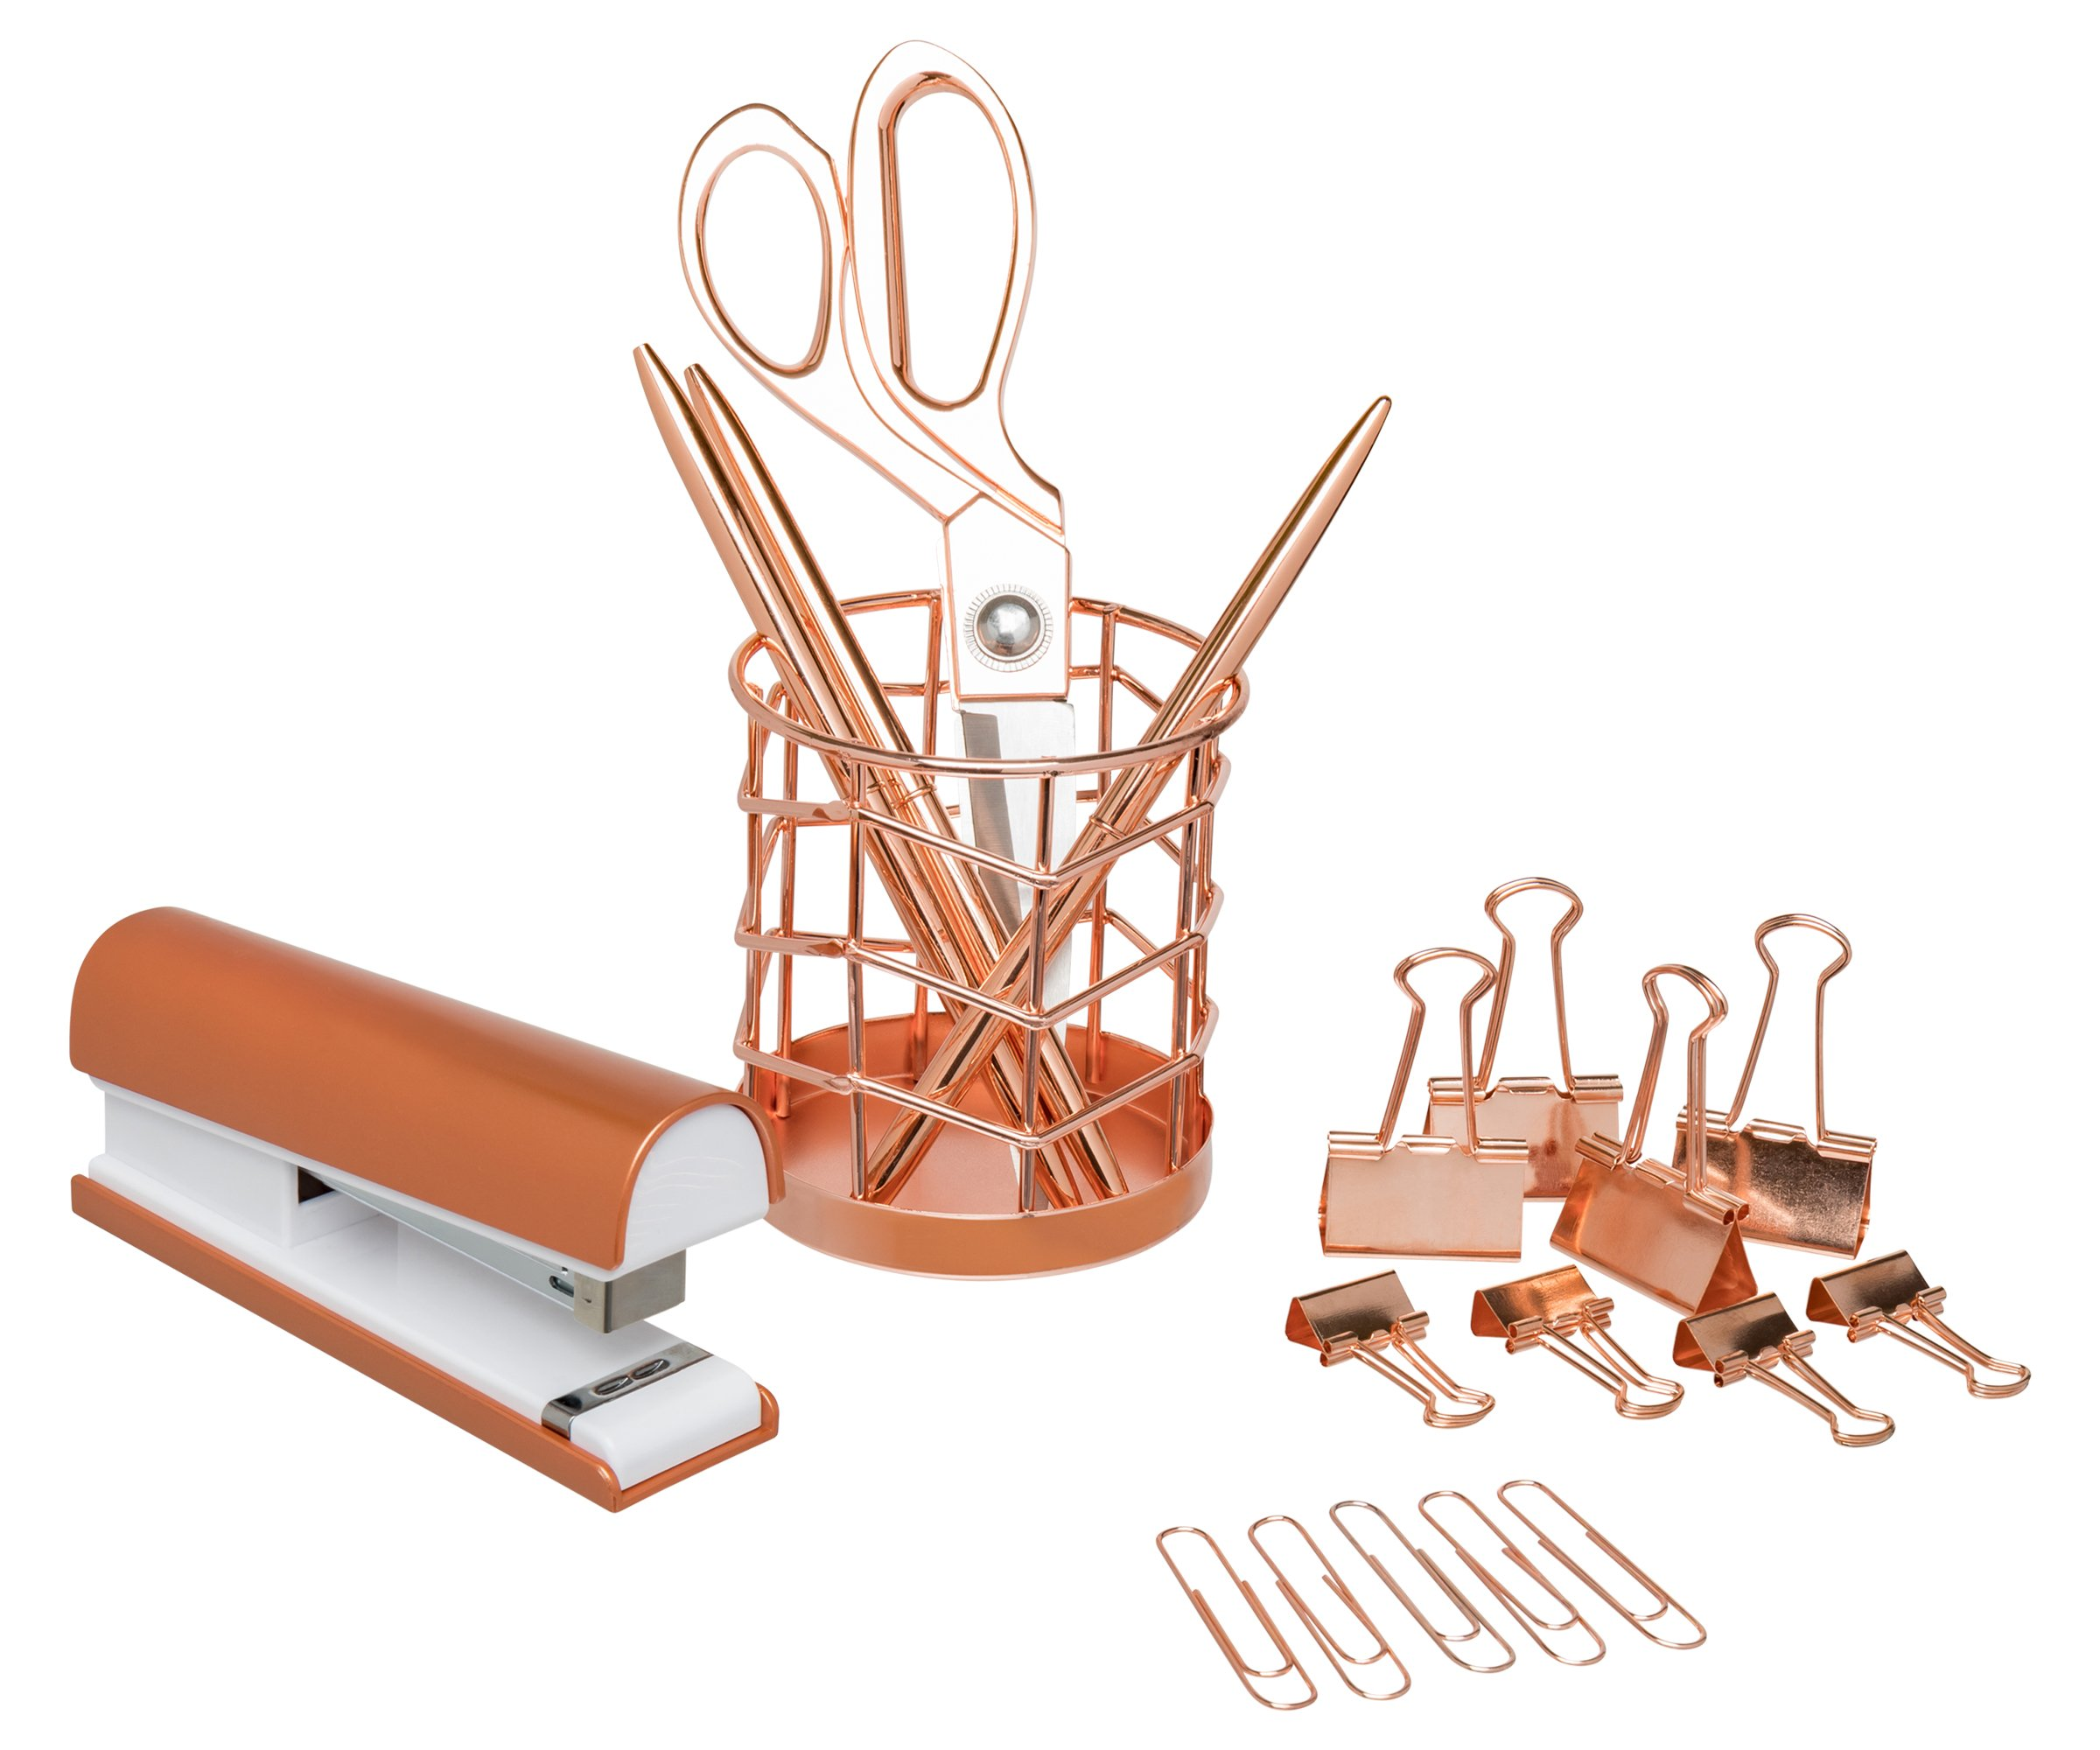 Rose Gold Desk Accessories | 7 Desktop Essentials (44 Items Total) | Office Supply Set & Organizer in Rose Gold Décor by Greenline Goods (Image #4)